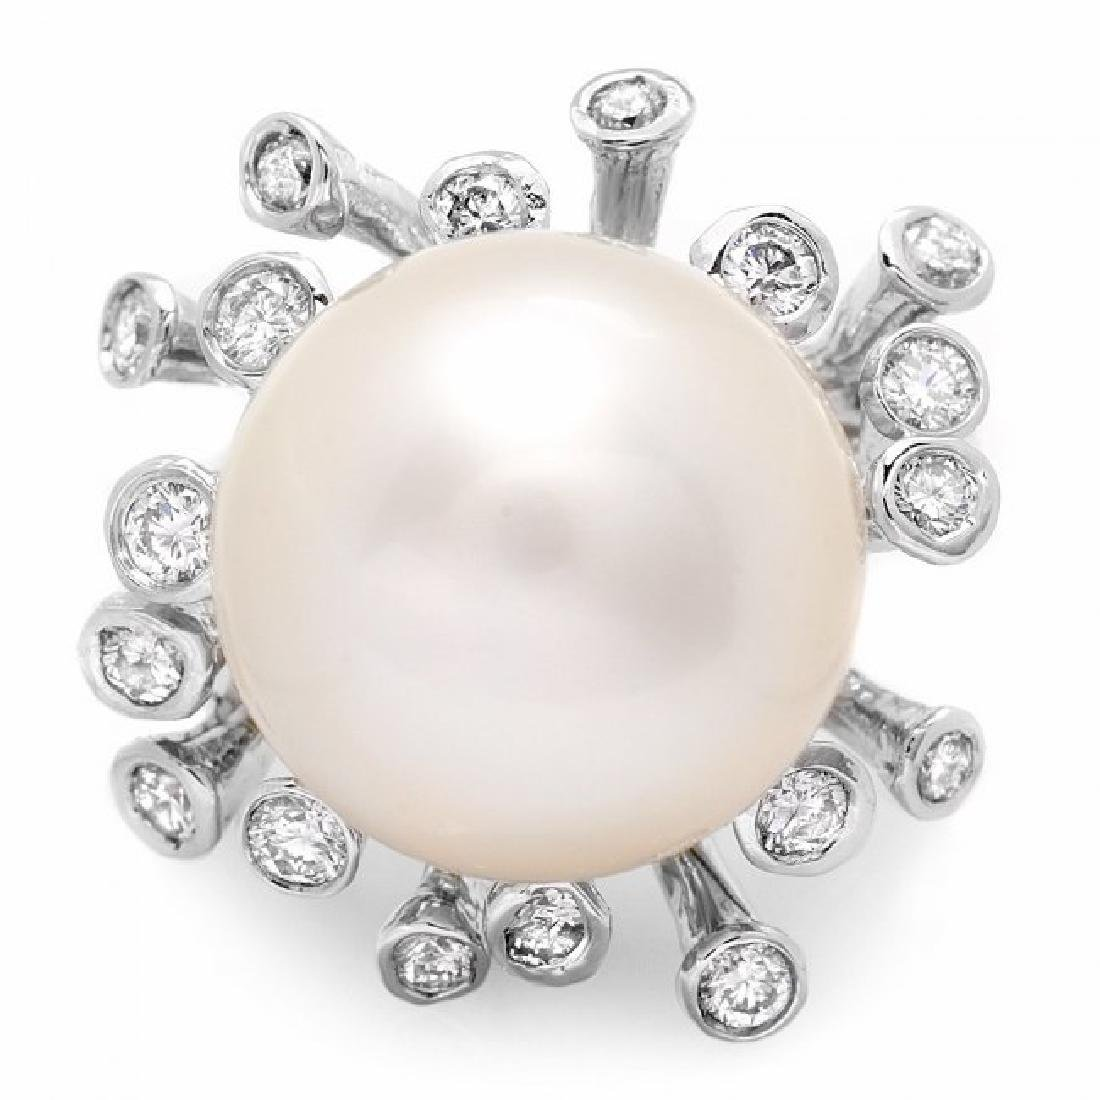 14k White Gold 15mm Pearl 0.85ct Diamond Ring - 3